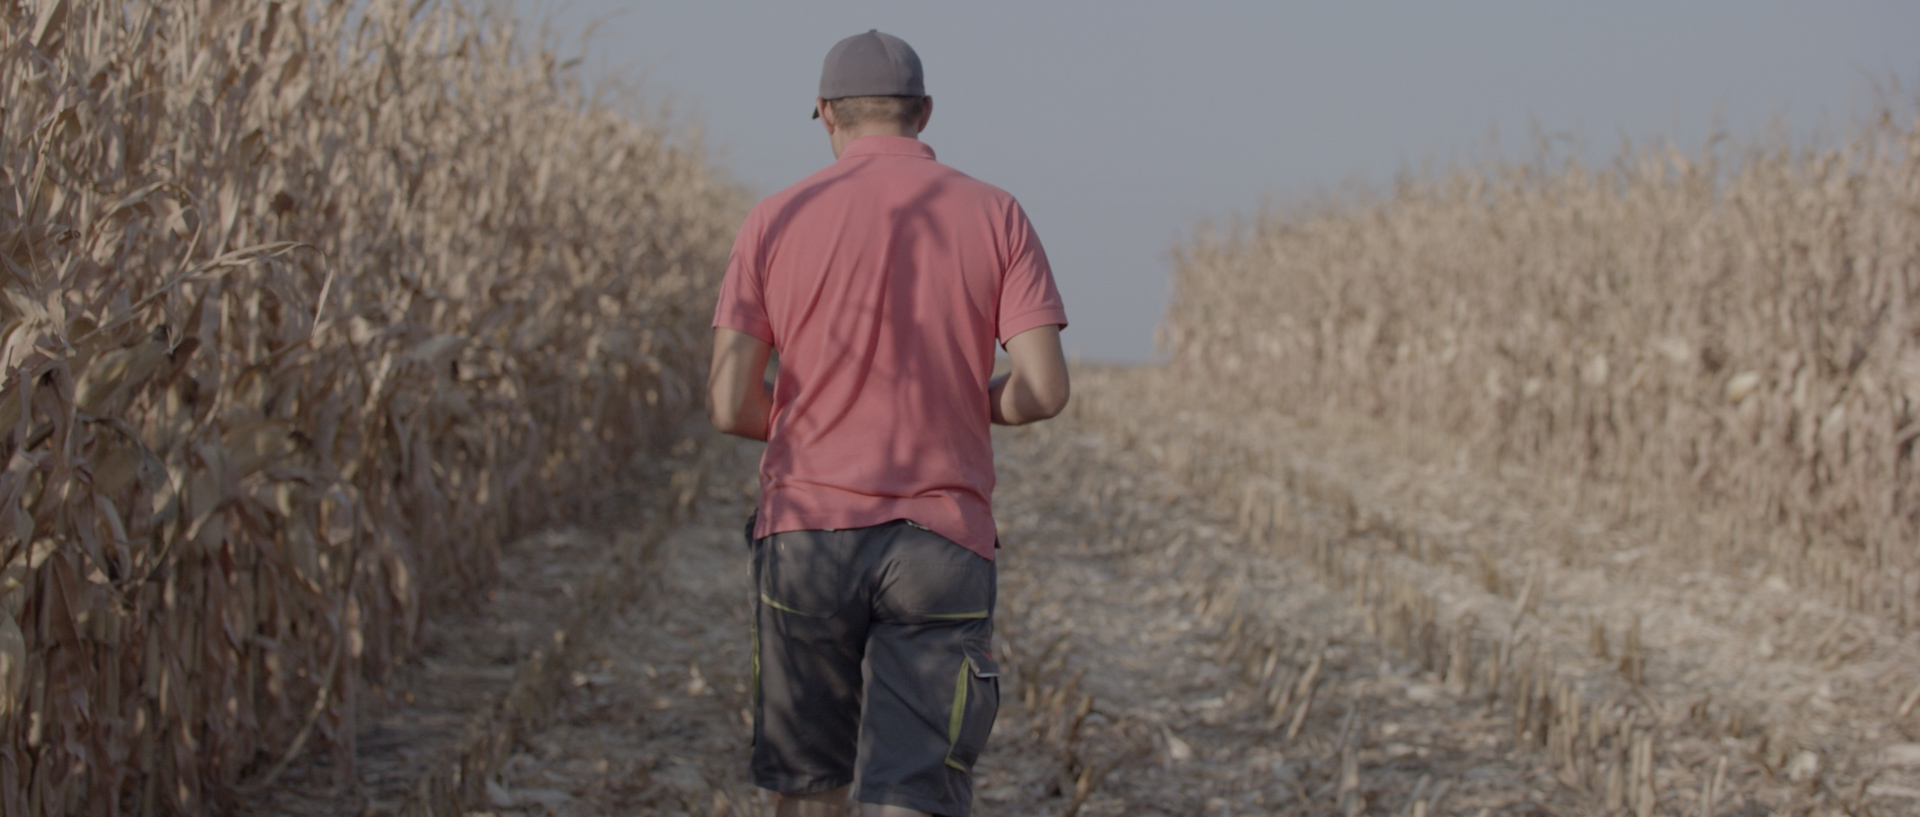 cosmin micu cornfield for mewi the farmers video by popotam productions video agency timisoara before color grading